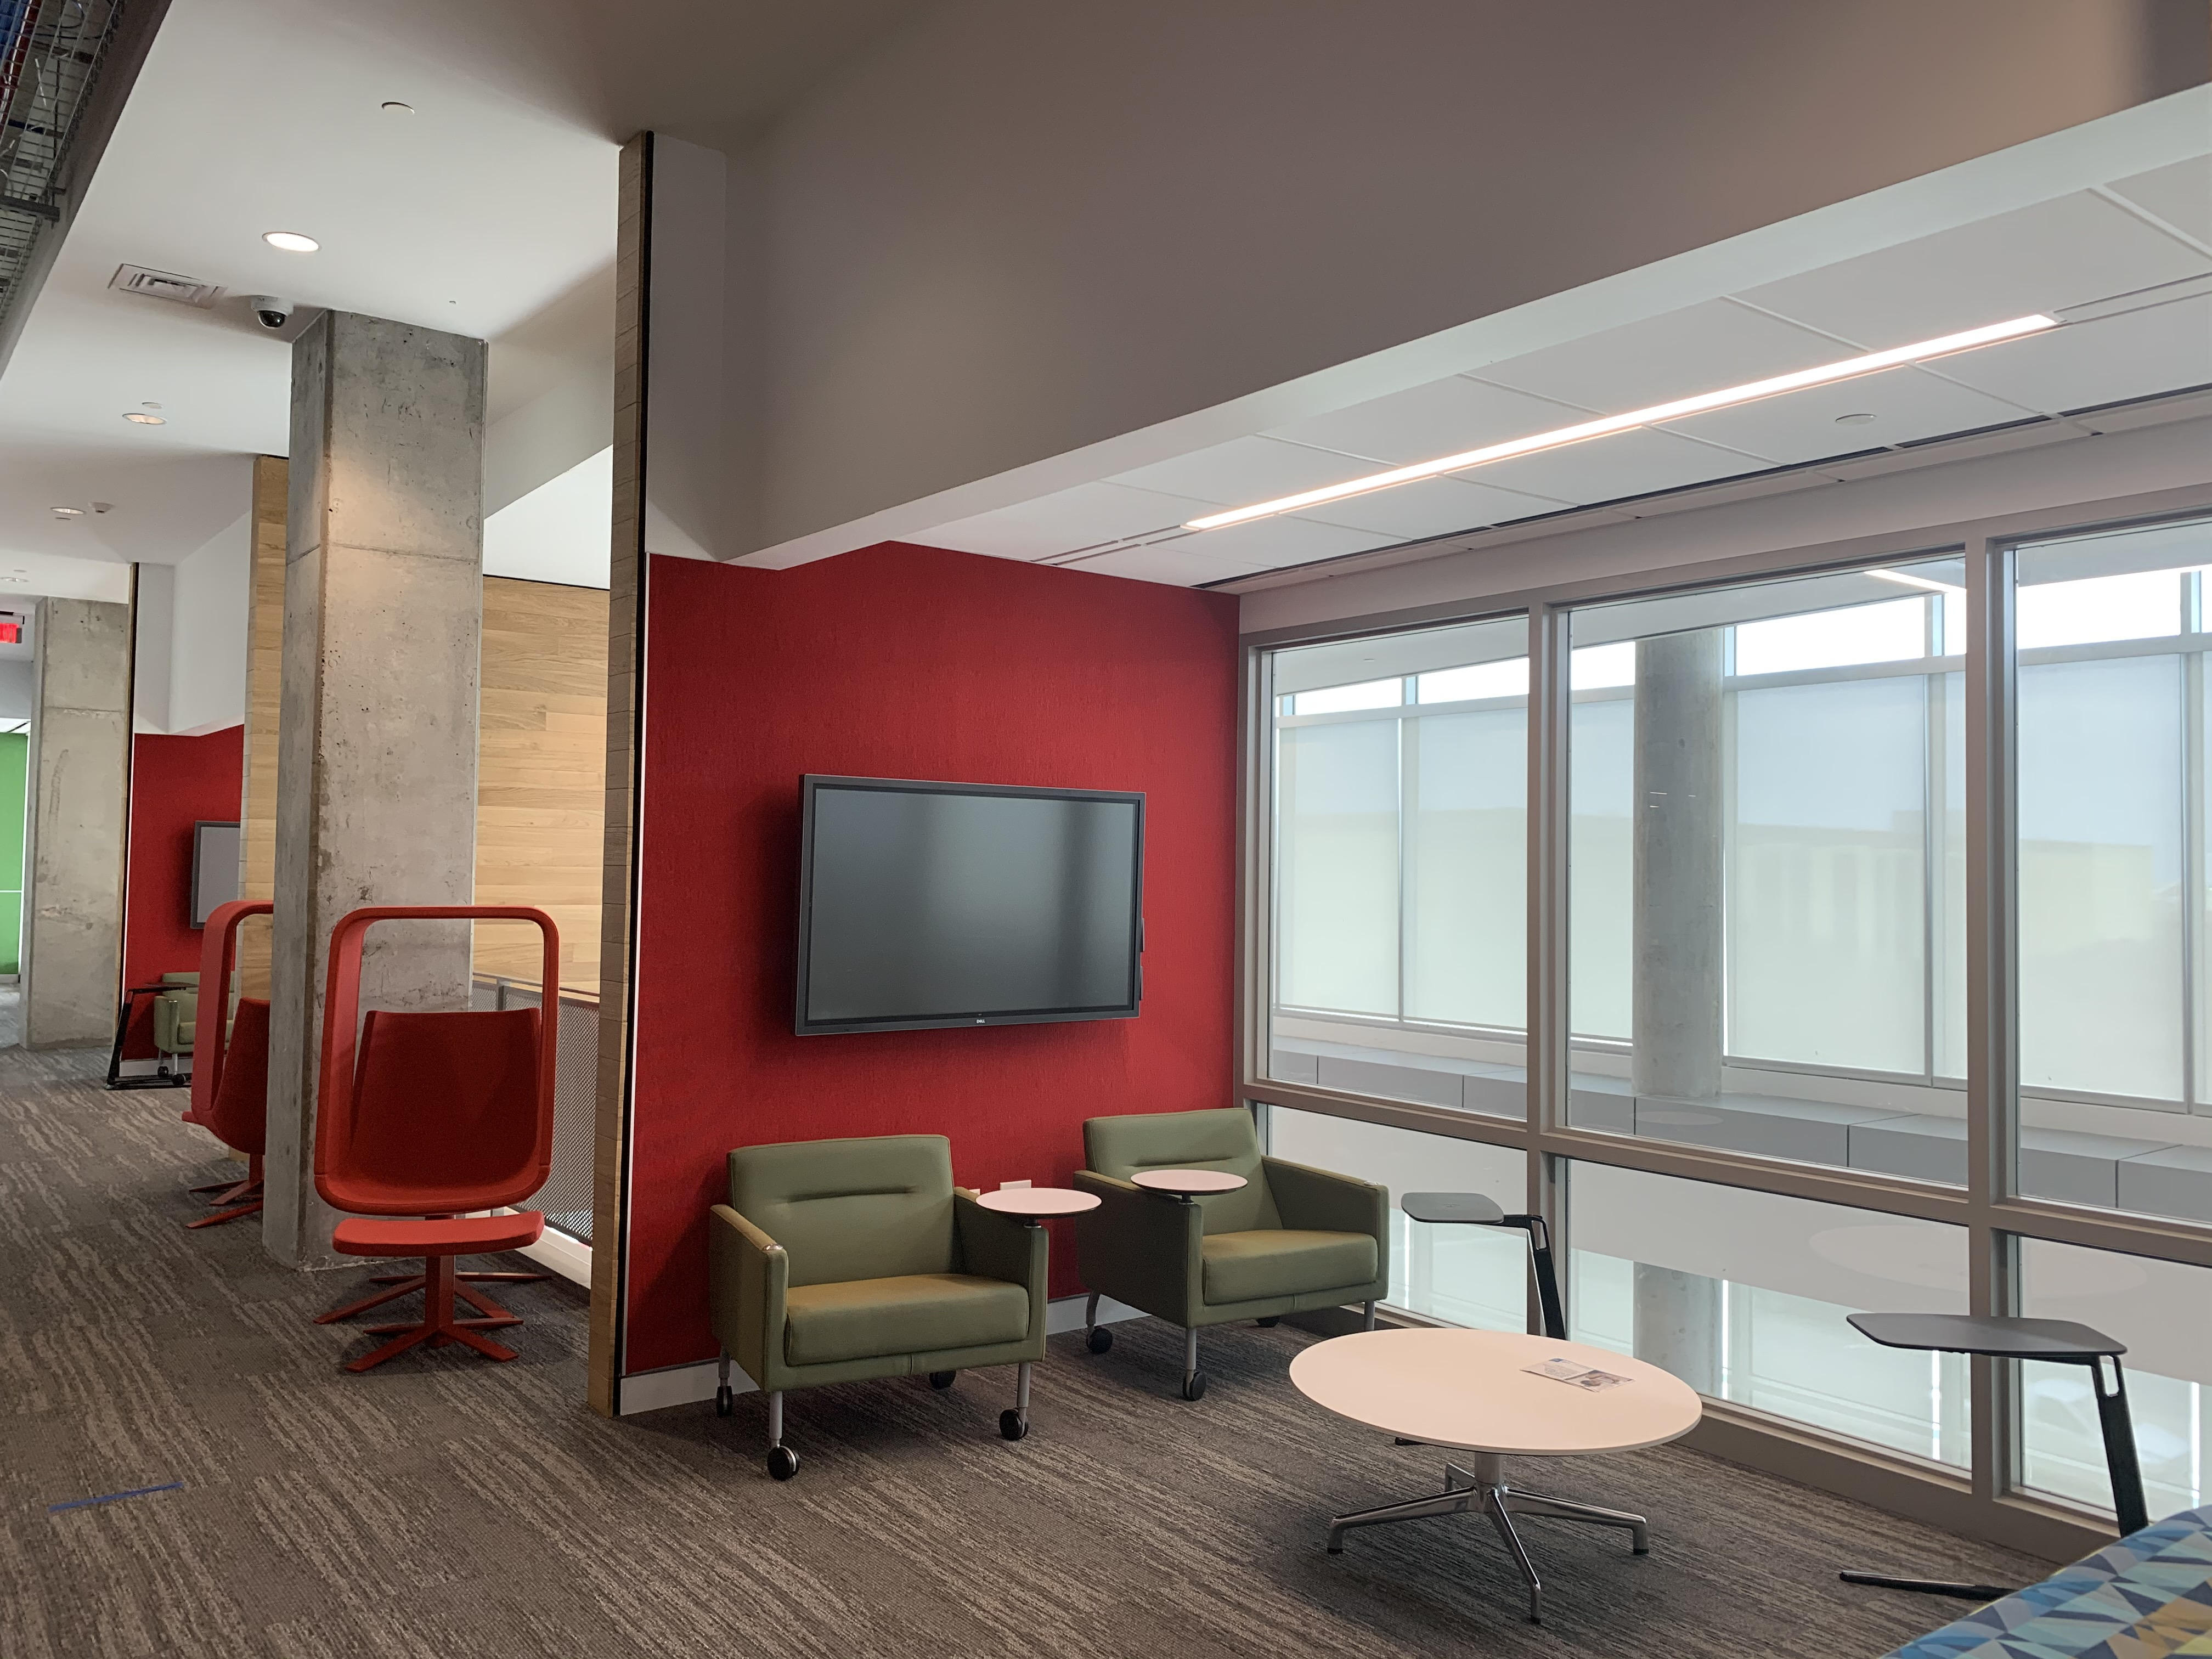 study area with red wall and variety of chairs